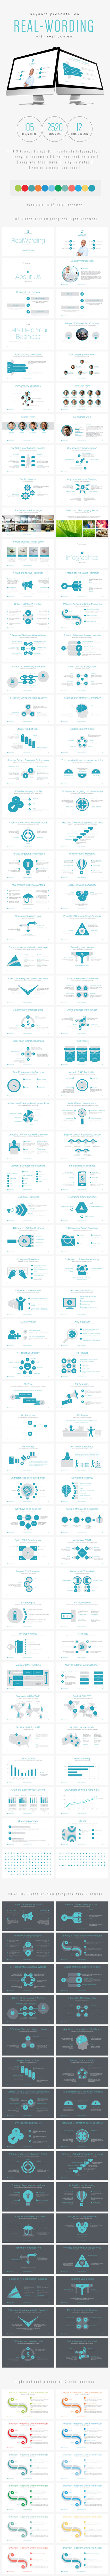 GraphicRiver Multipurpose Keynote Presentation Vol 13 11886960